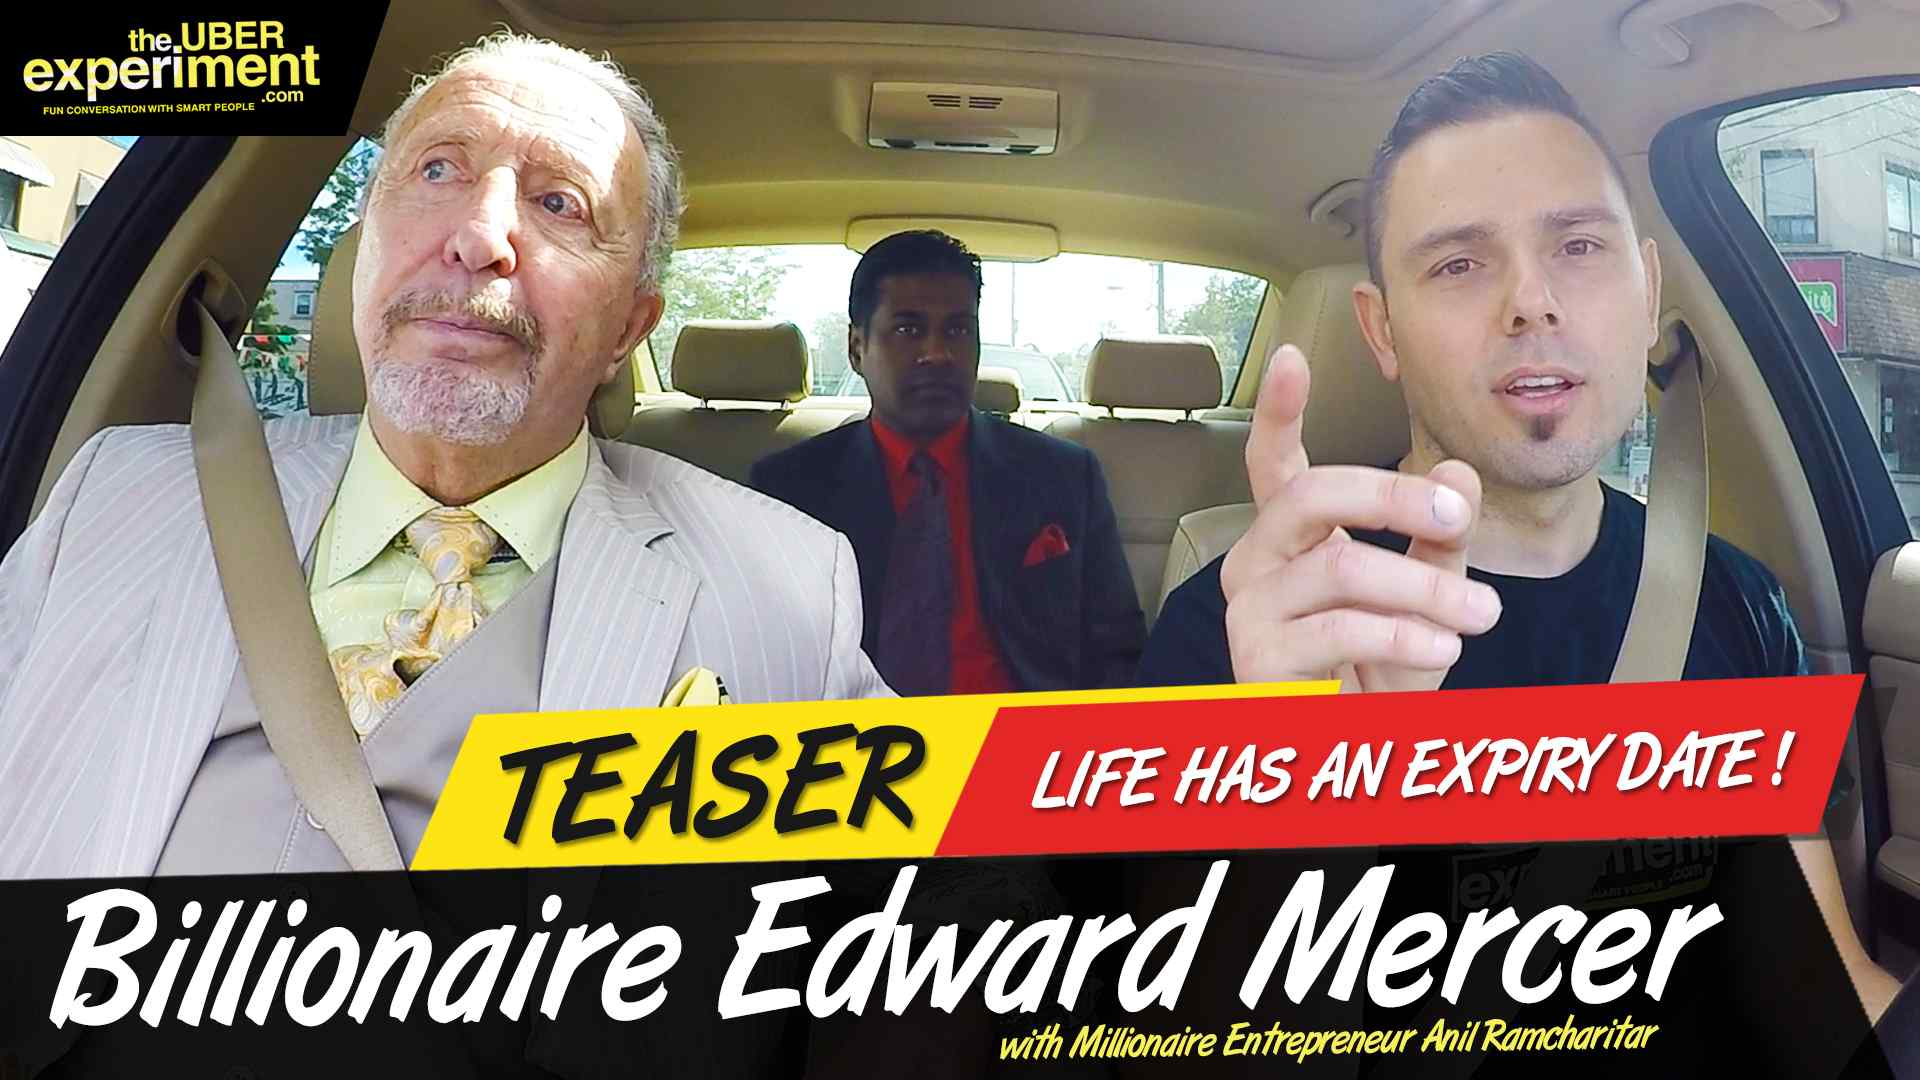 LIFE HAS AN EXPIRY DATE - Billionaire Edward Mercer on The UBER Experiment Reality Talk Show